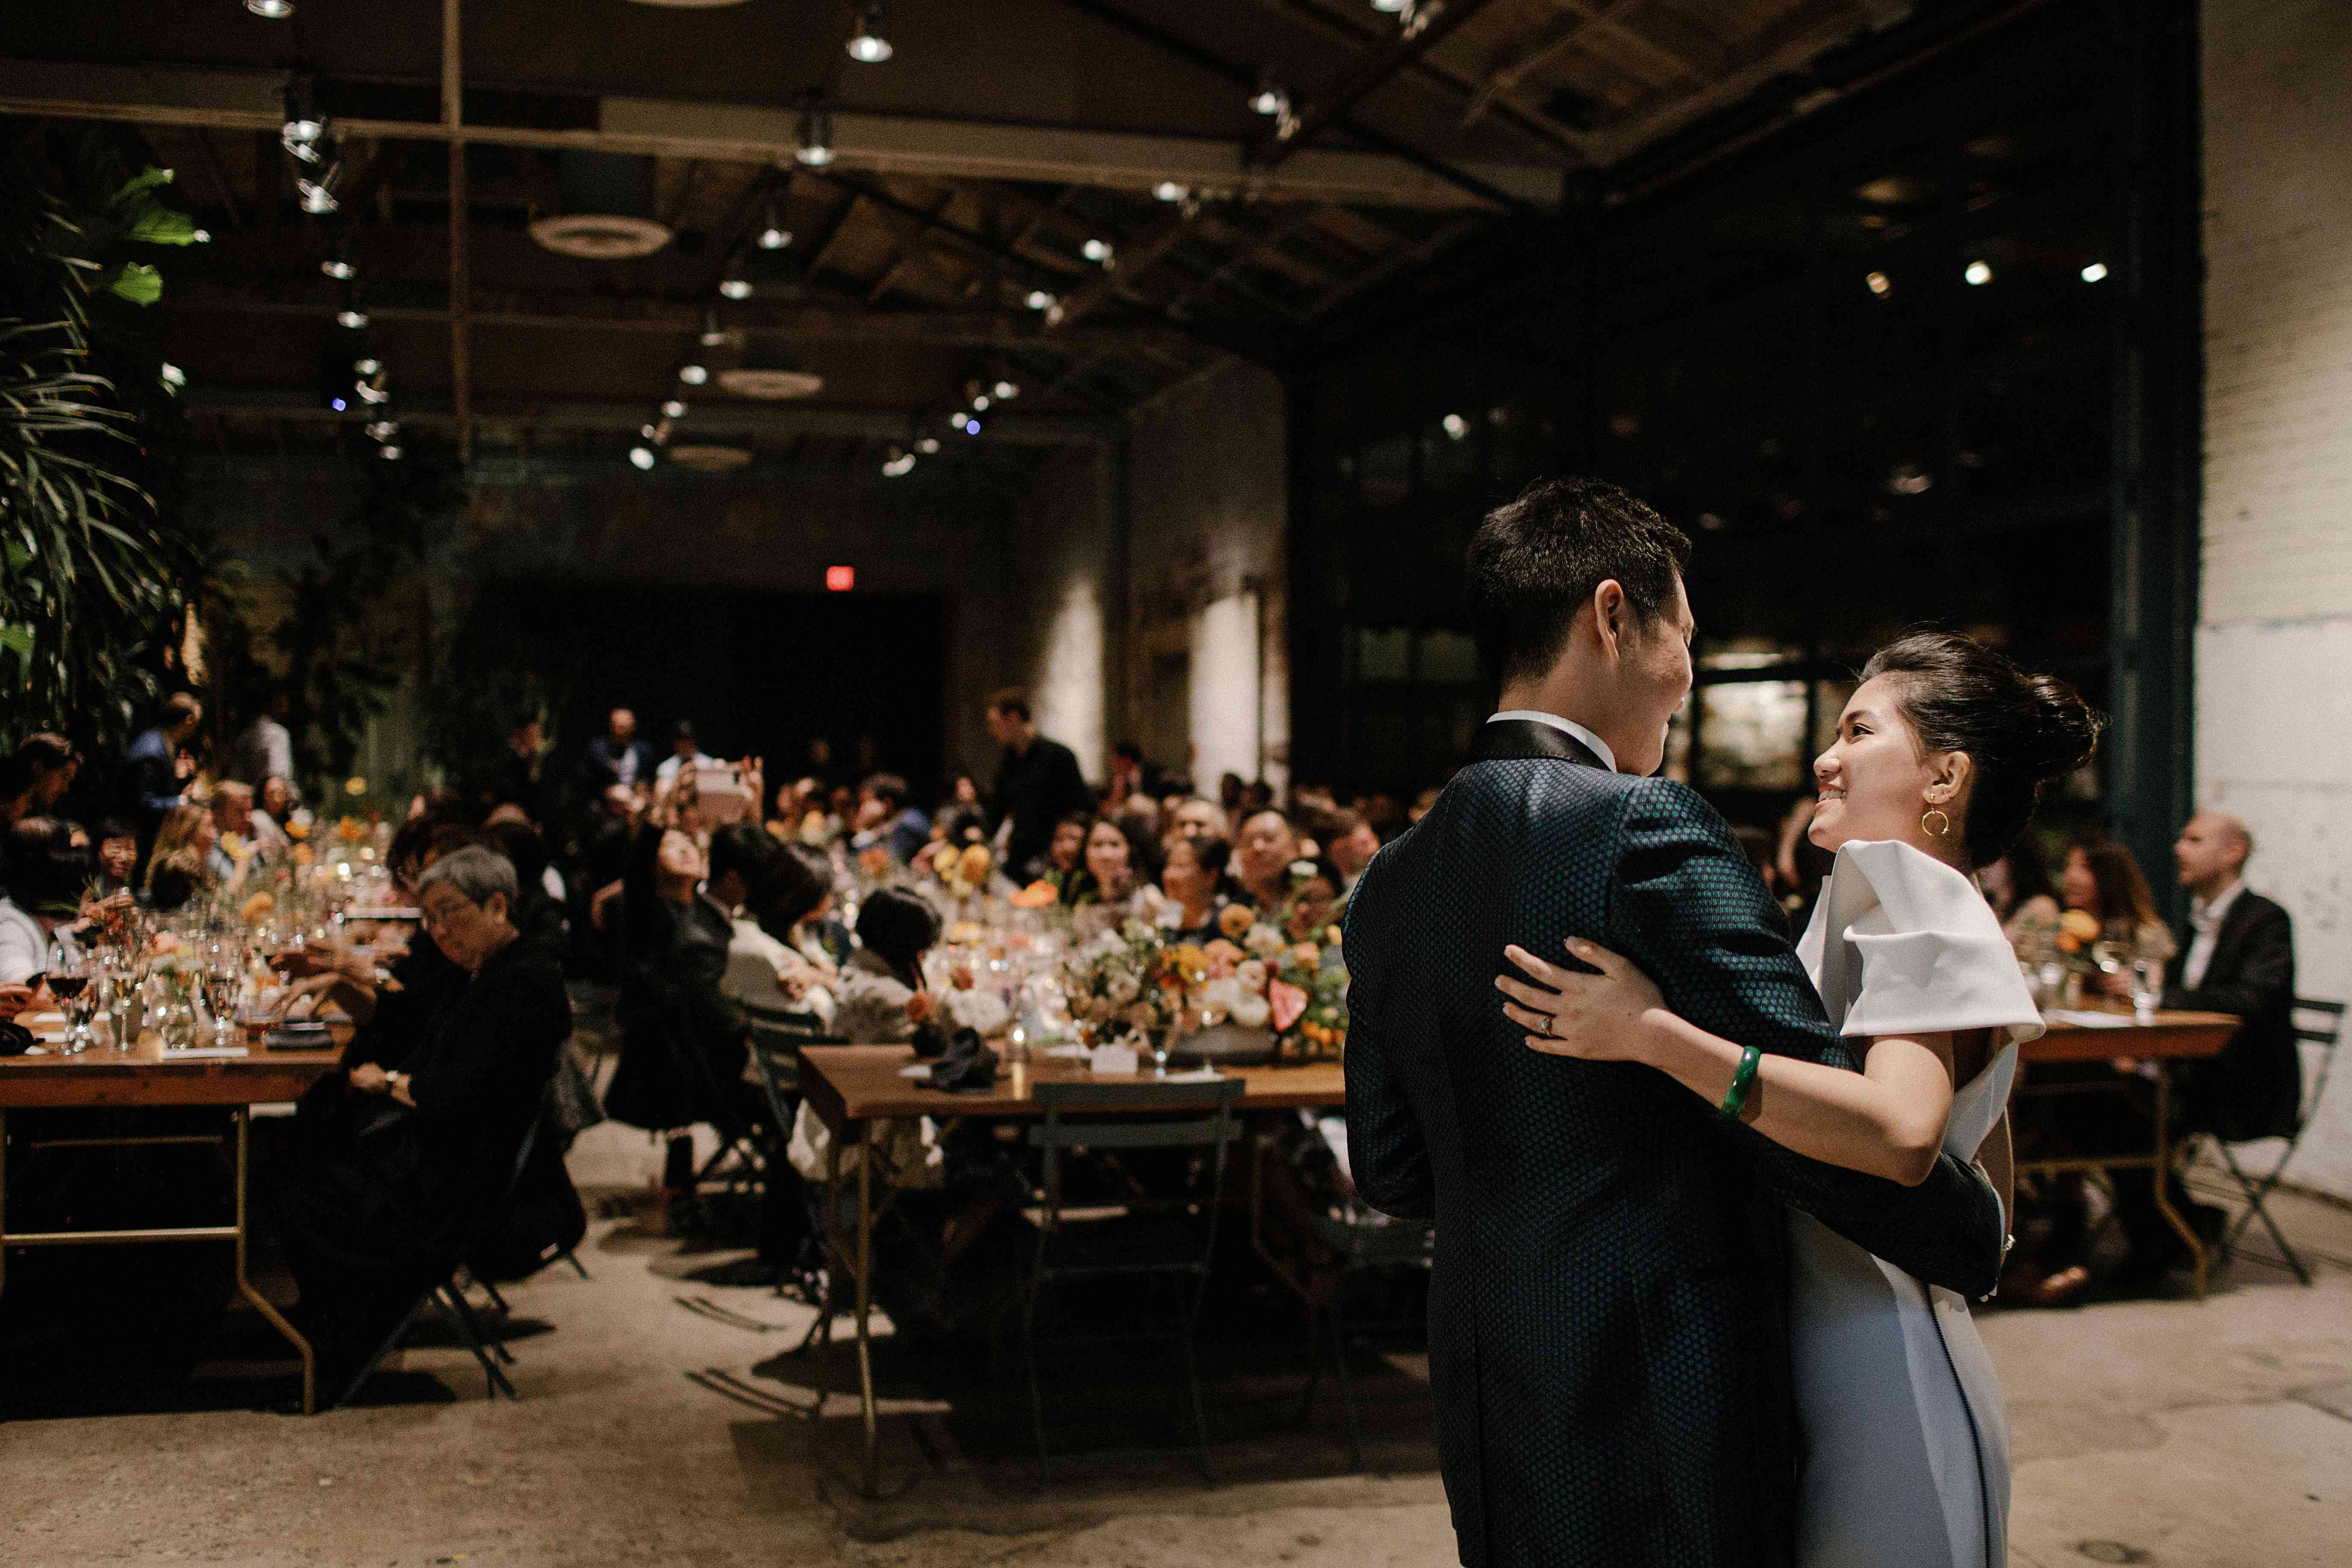 <p>Bride and groom during dance</p><br><br>